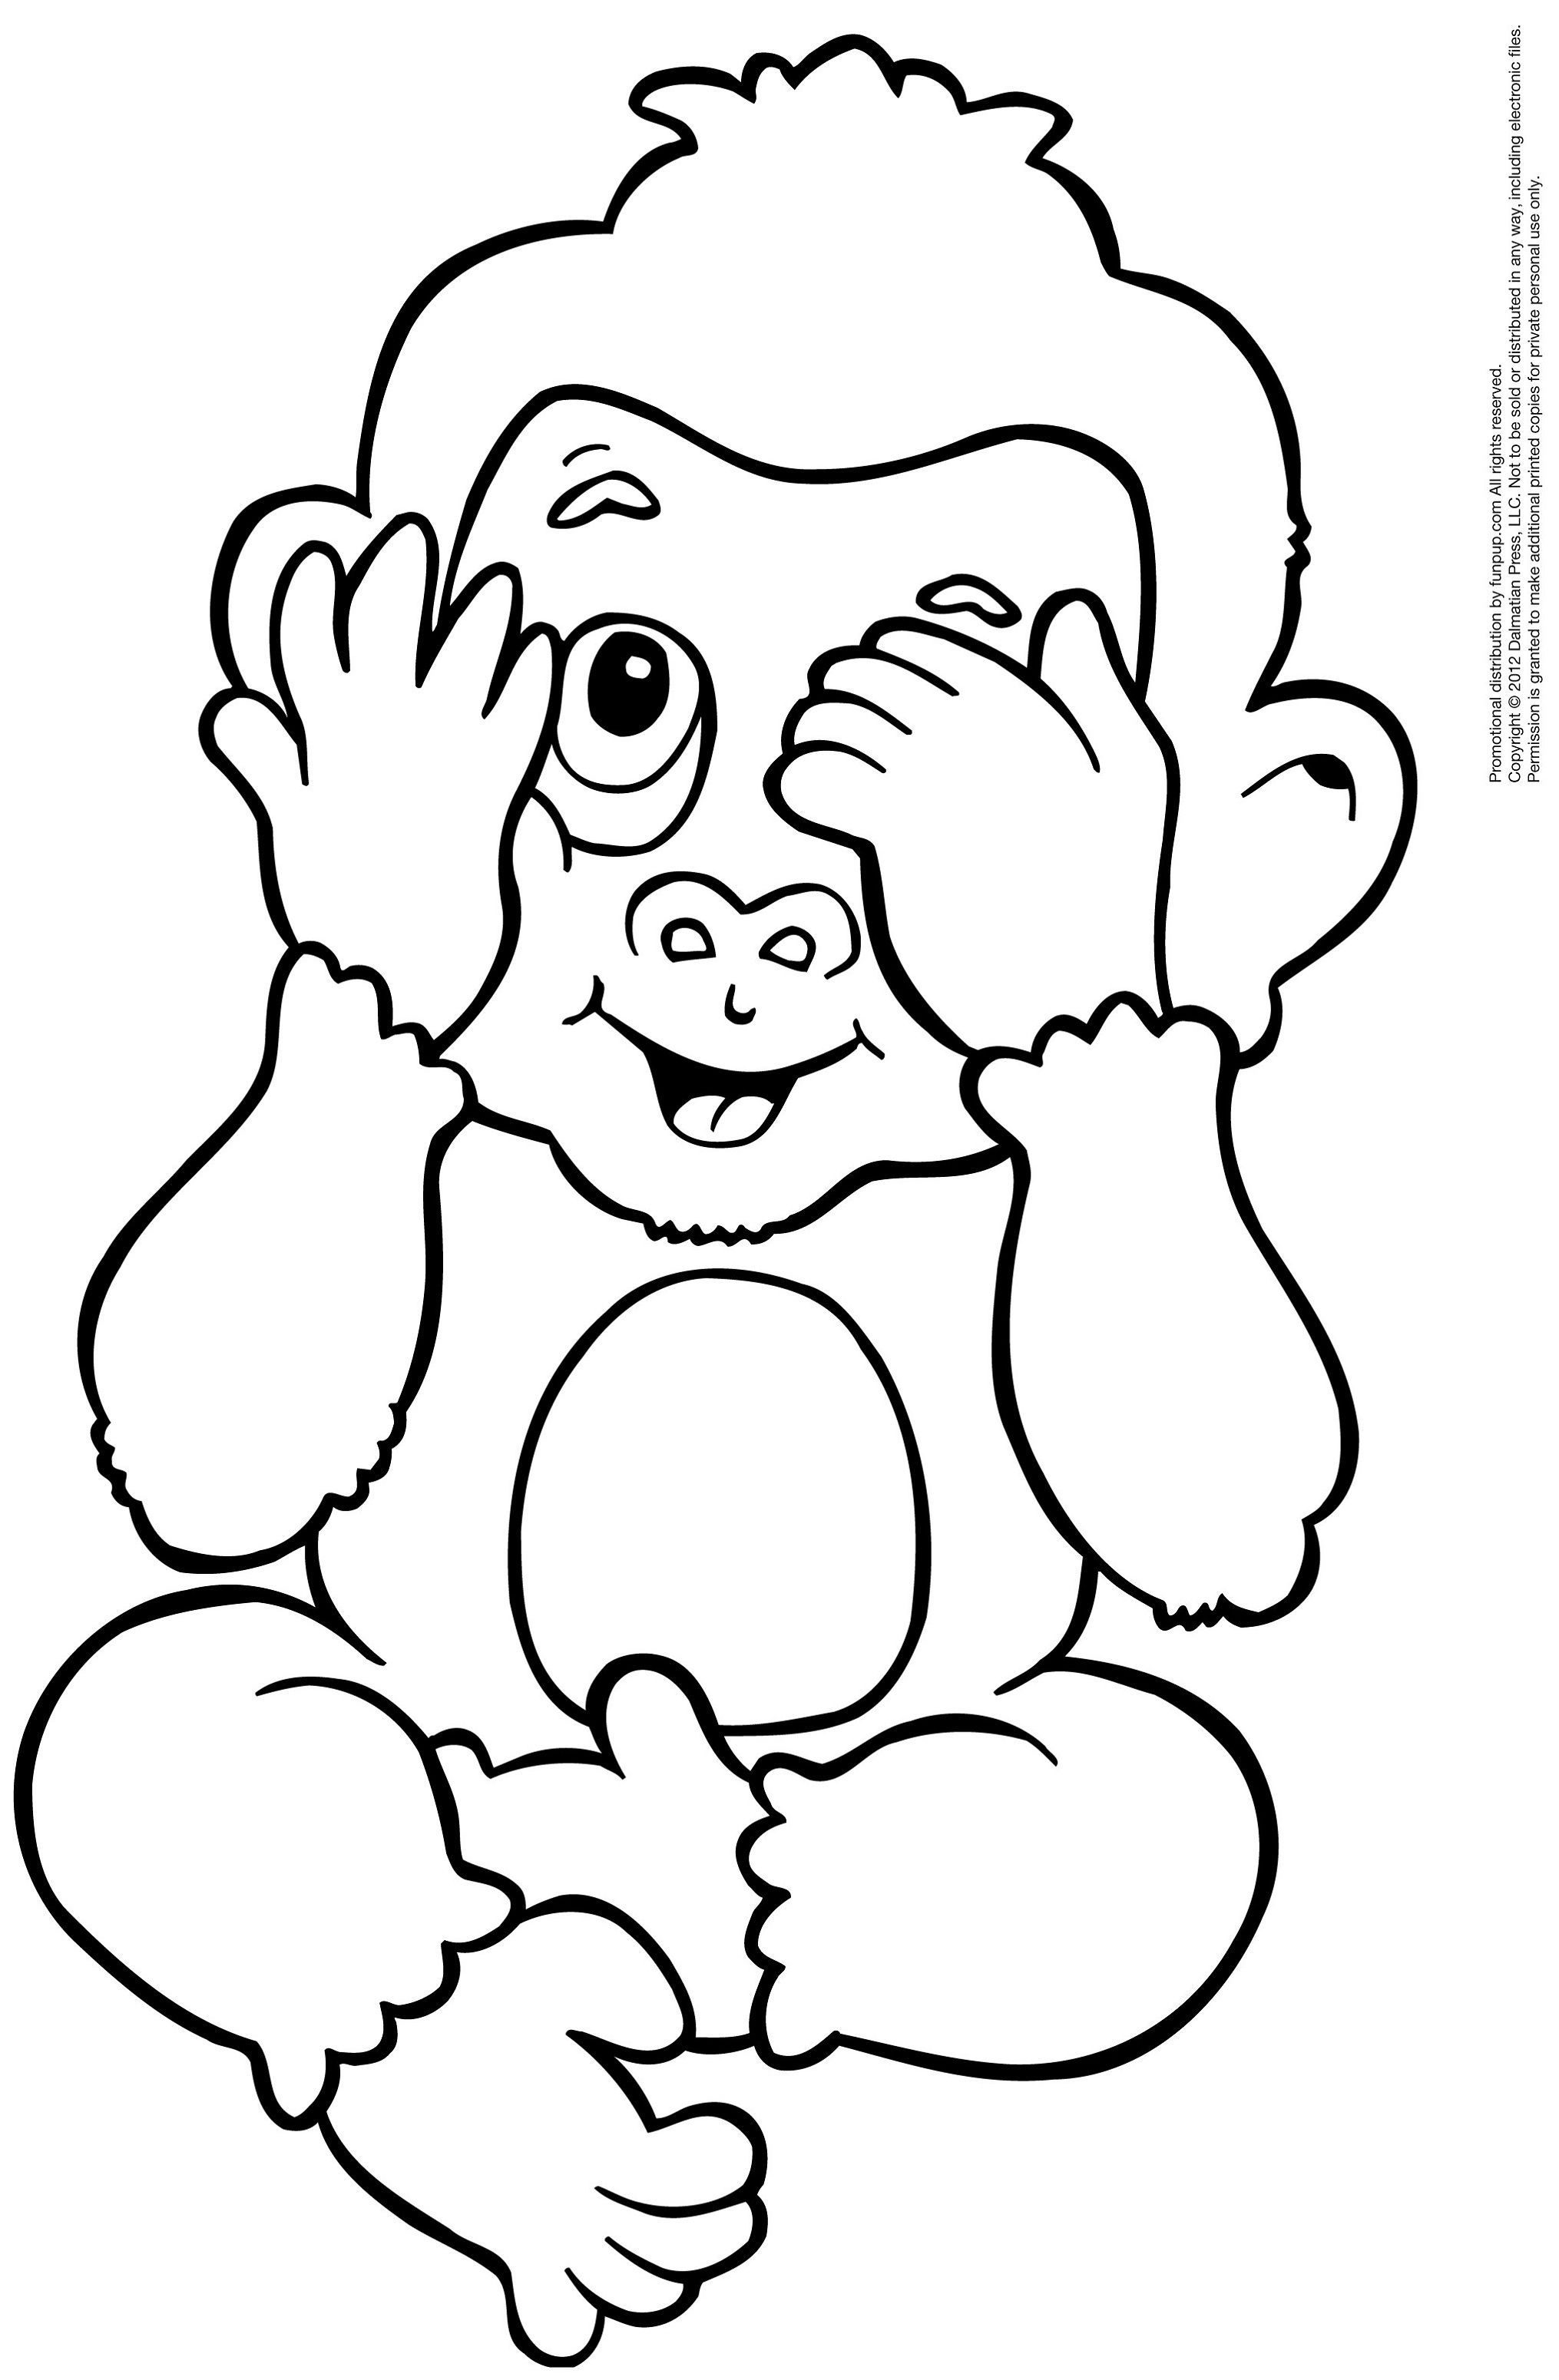 Coloring Pages Of Monkeys Kids Learning Activity Monkey Coloring Pages Owl Coloring Pages Cute Coloring Pages